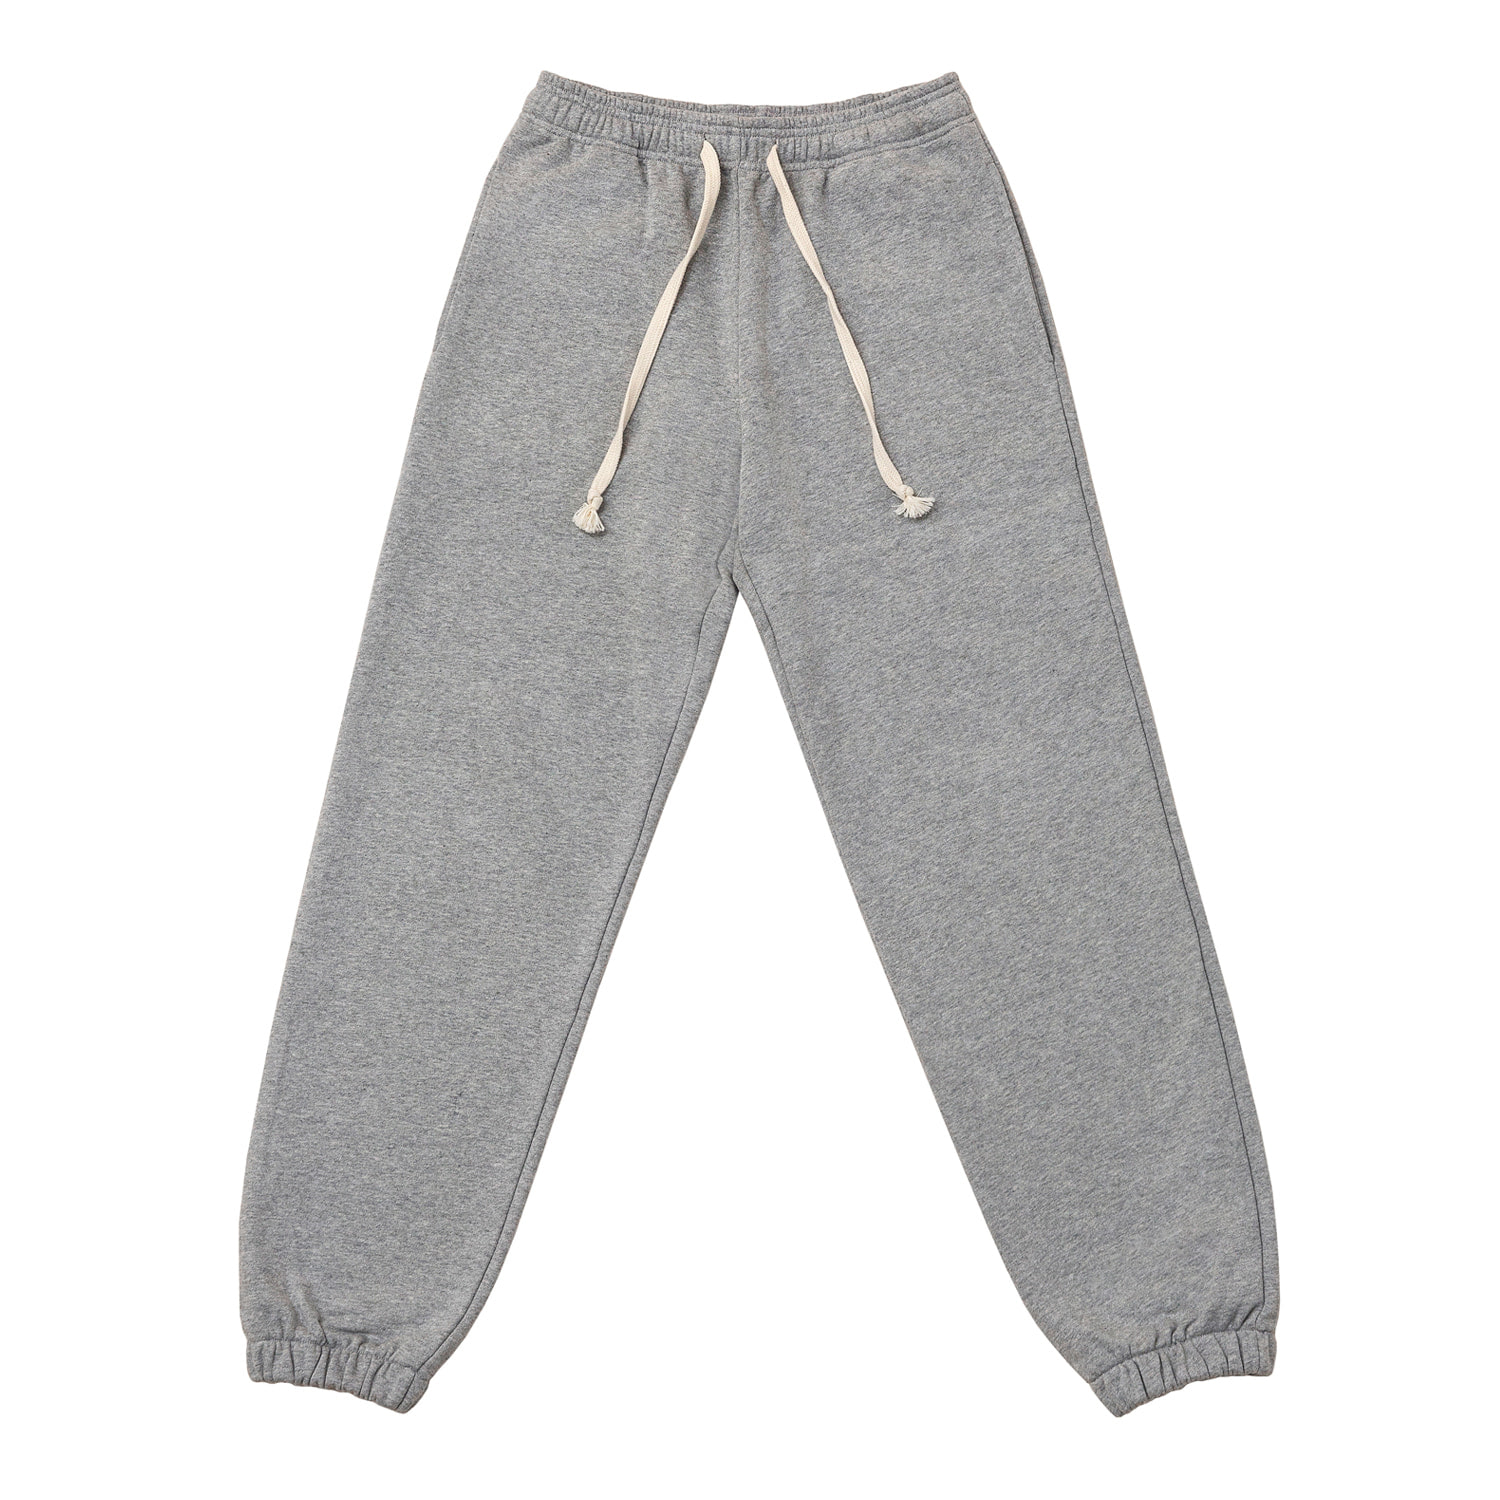 6th) ORE COTTON 005 jogger PT M.Grey